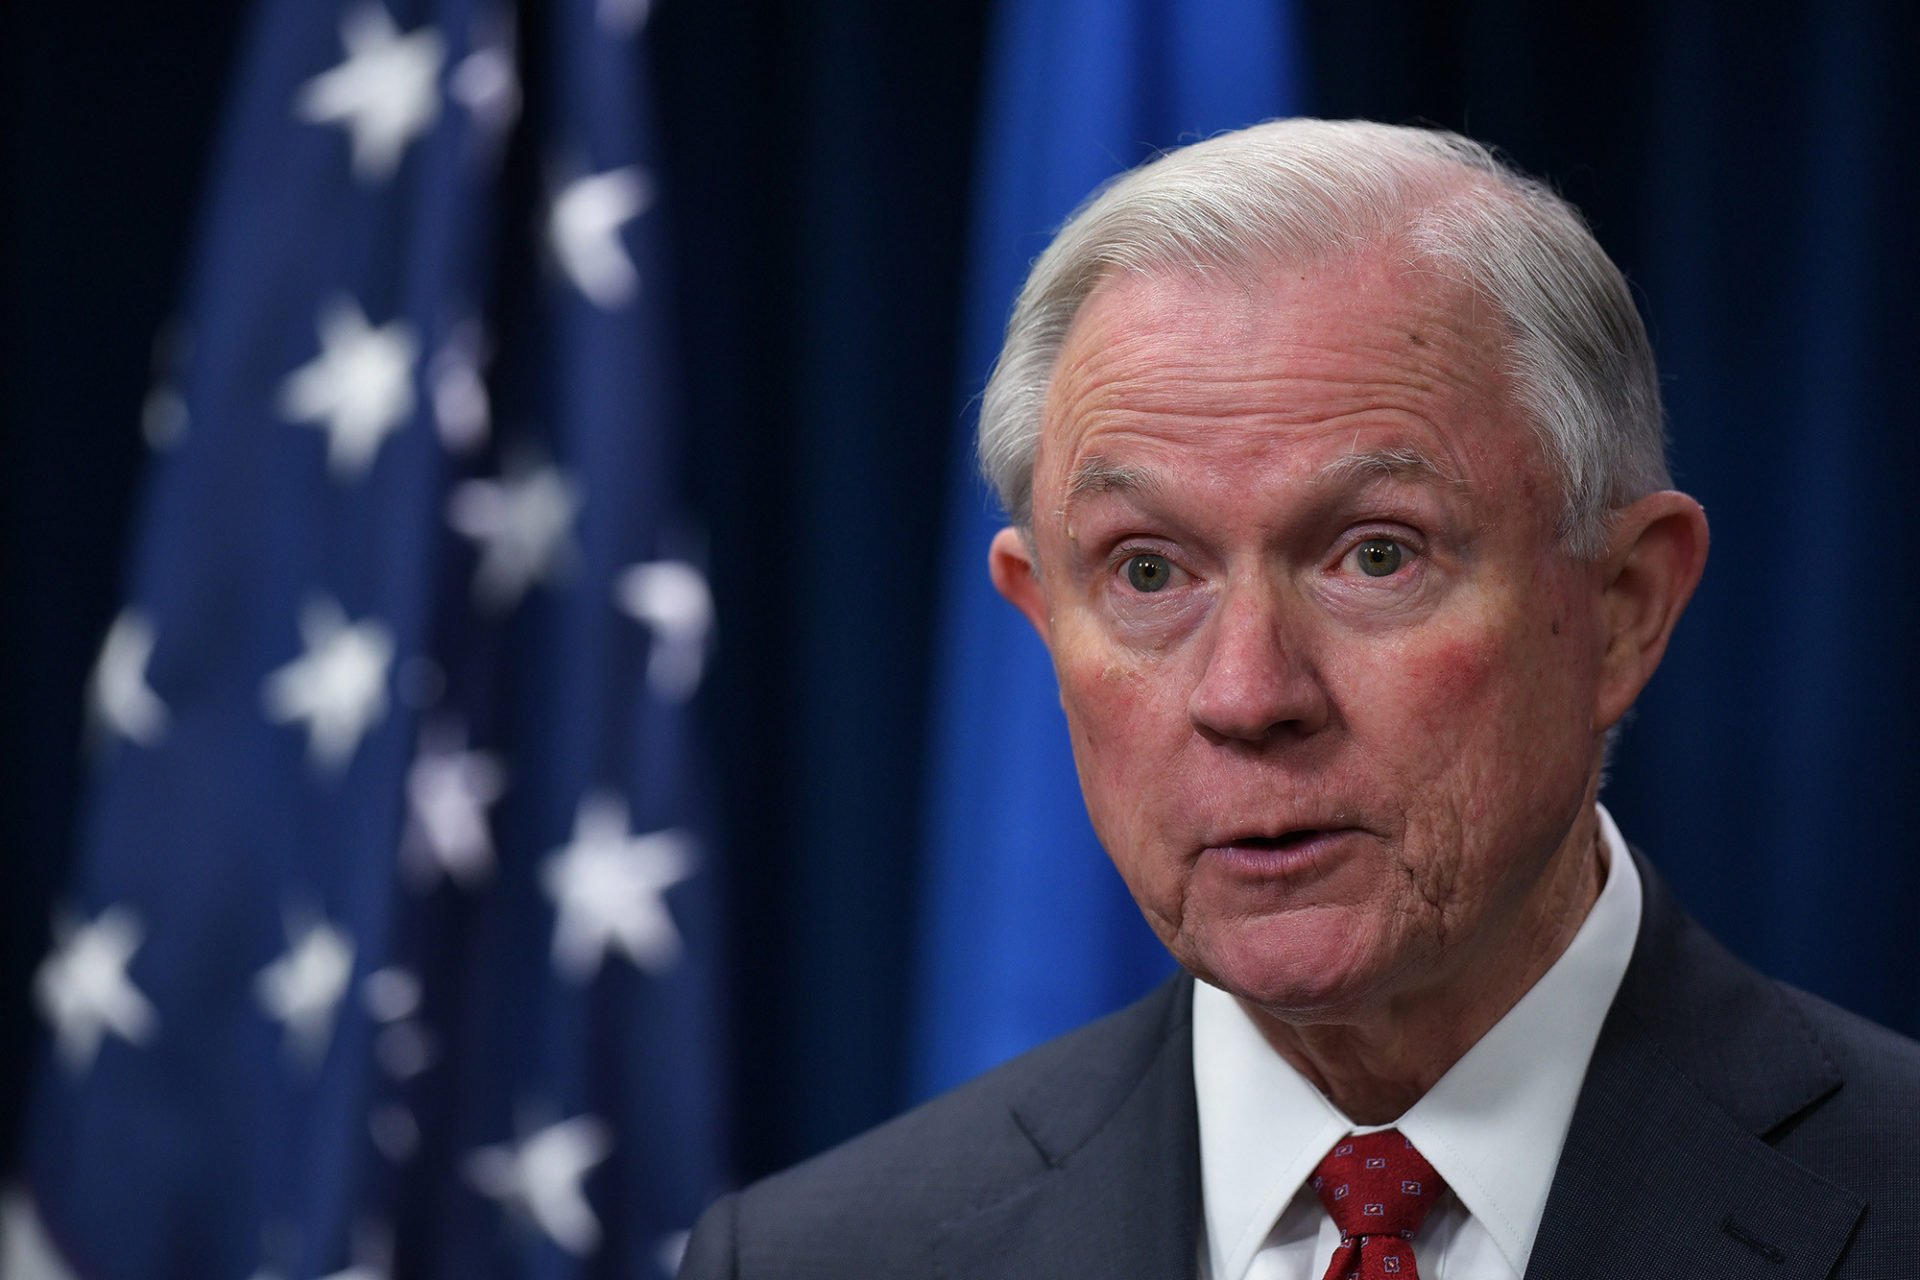 Sessions Federal prosecutor evaluating alleged FBI DOJ wrongdoing no second special counsel for now